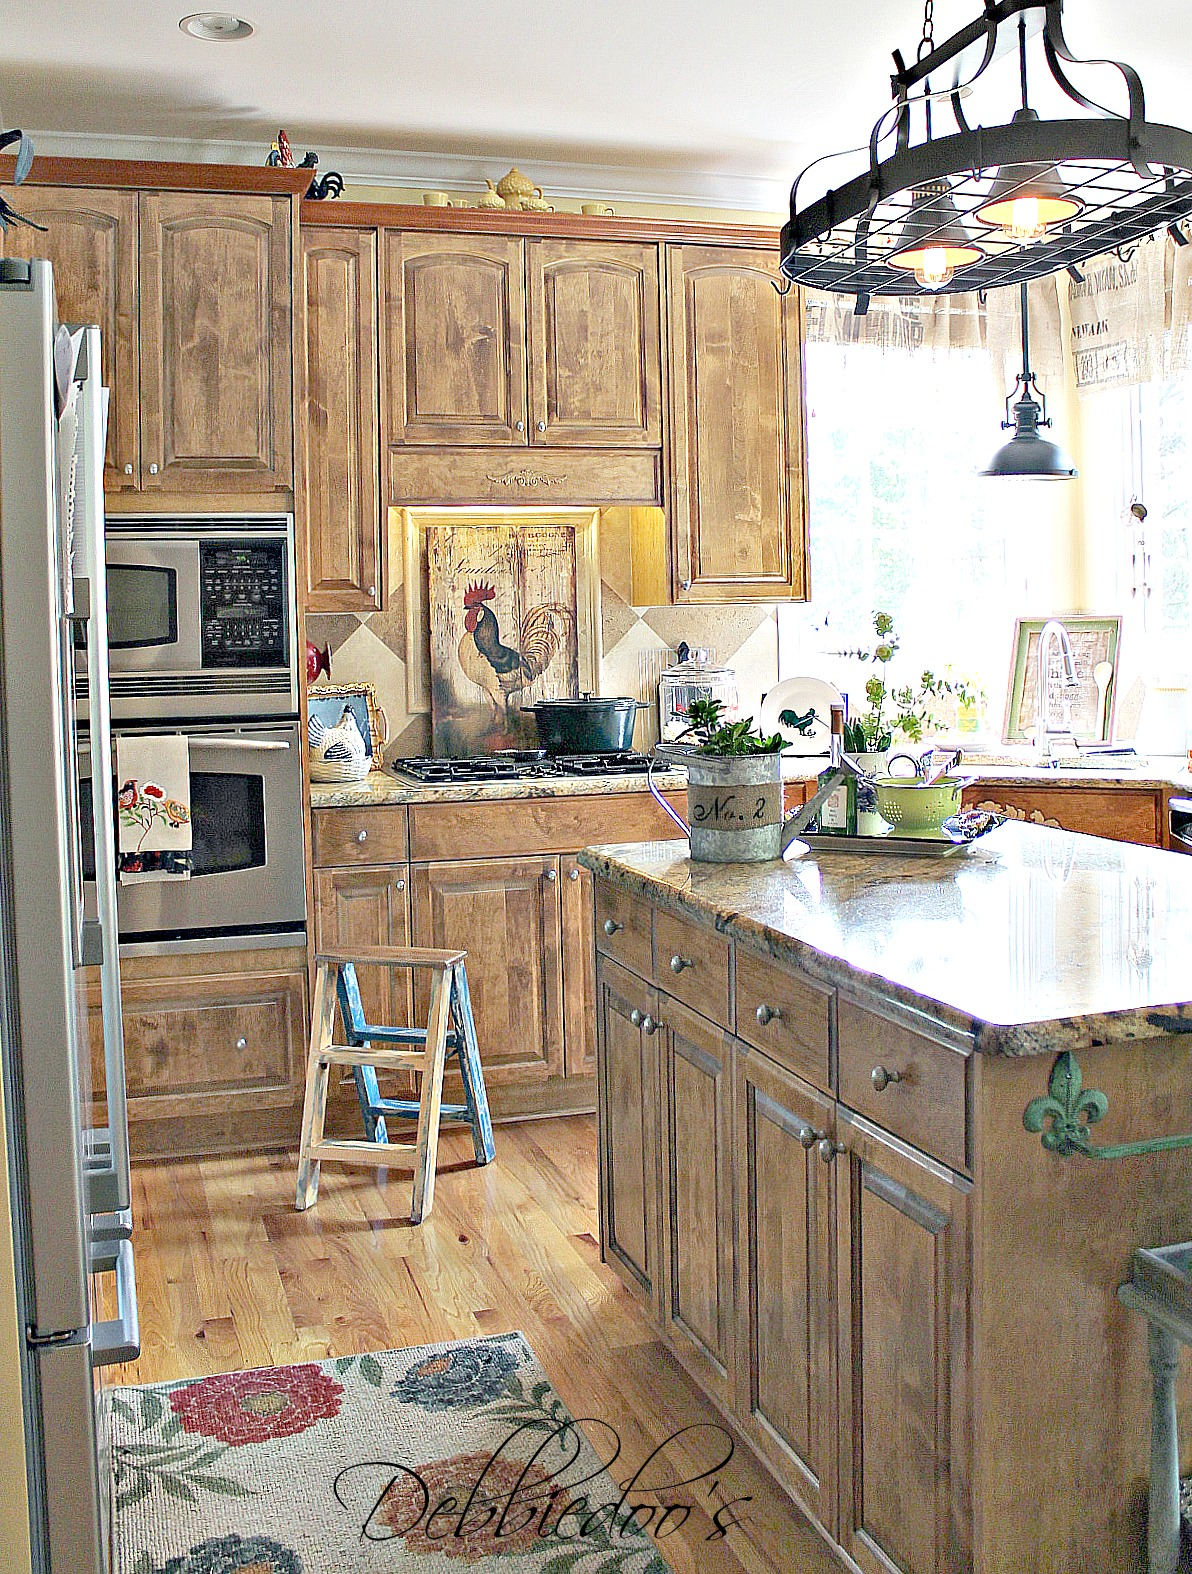 French country kitchen style freshened up debbiedoos - Small french country kitchens ...